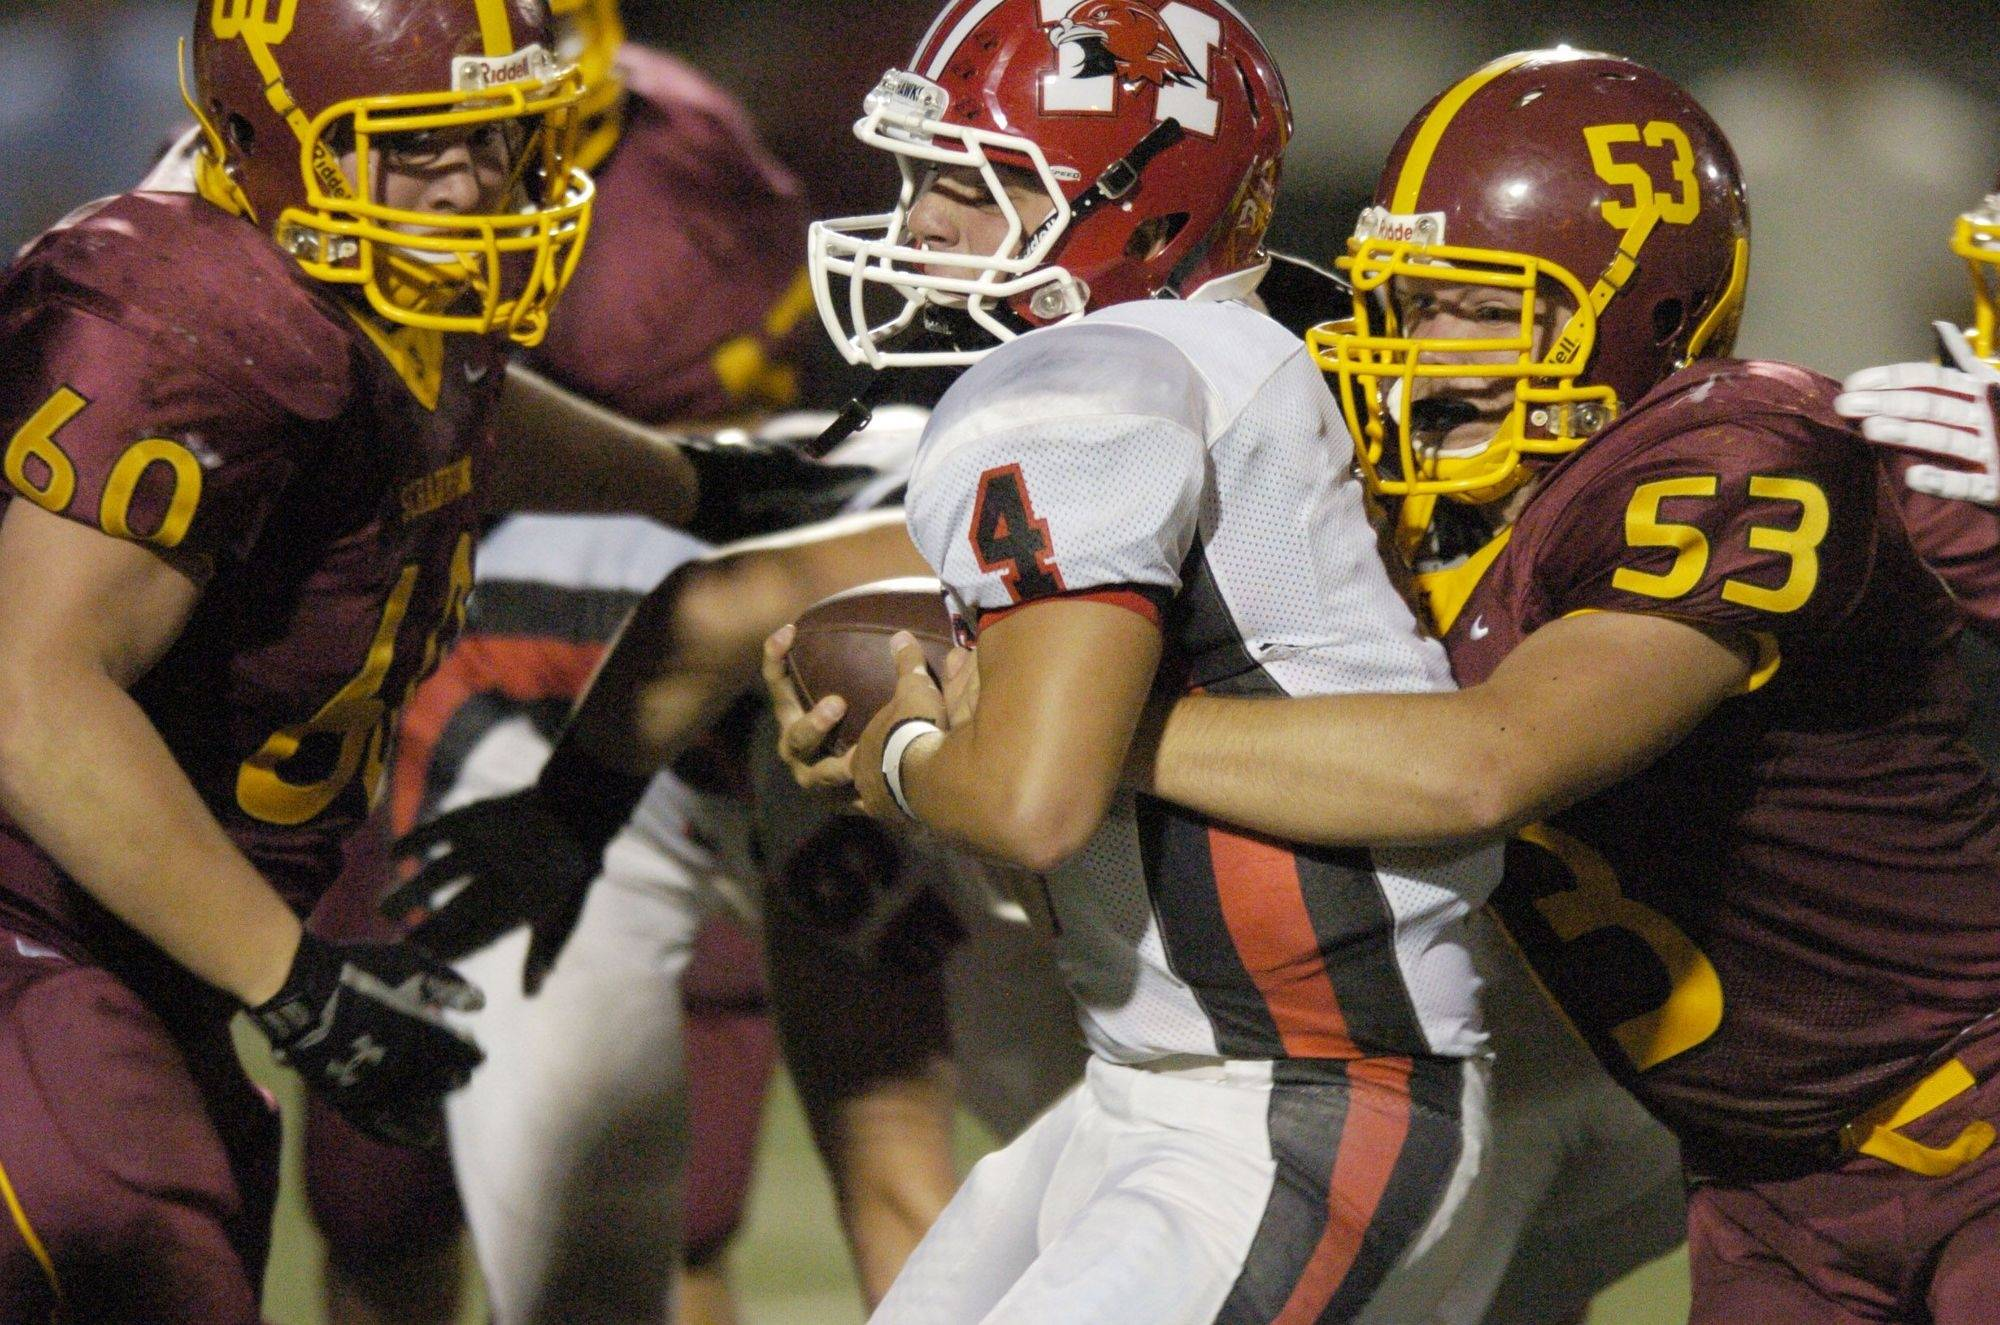 WEEK 1- Schaumburg's Don Wiencek, left, and Kyle Koburi, right, tackle Maine South's Jimmy Frankos.